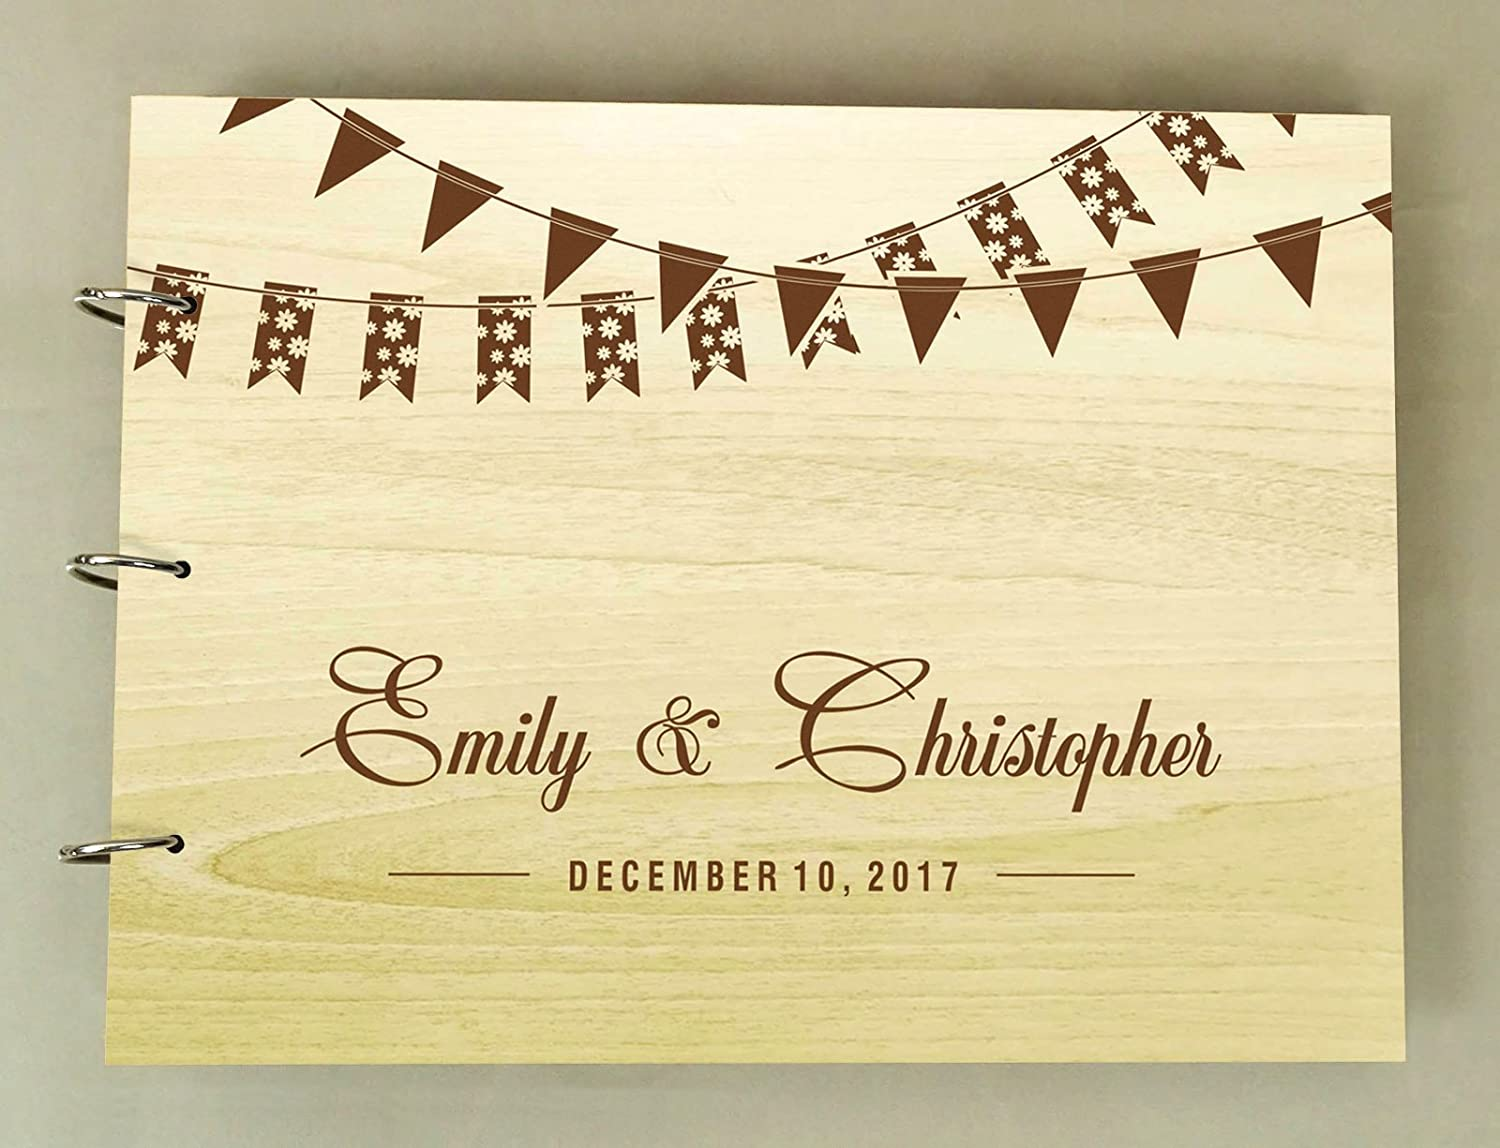 Bride And Groom Silhouette Personalized Name And Date Wedding Wooden Guest Book Photo Albums Scrapbook Darling Souvenir DSGB10A-1